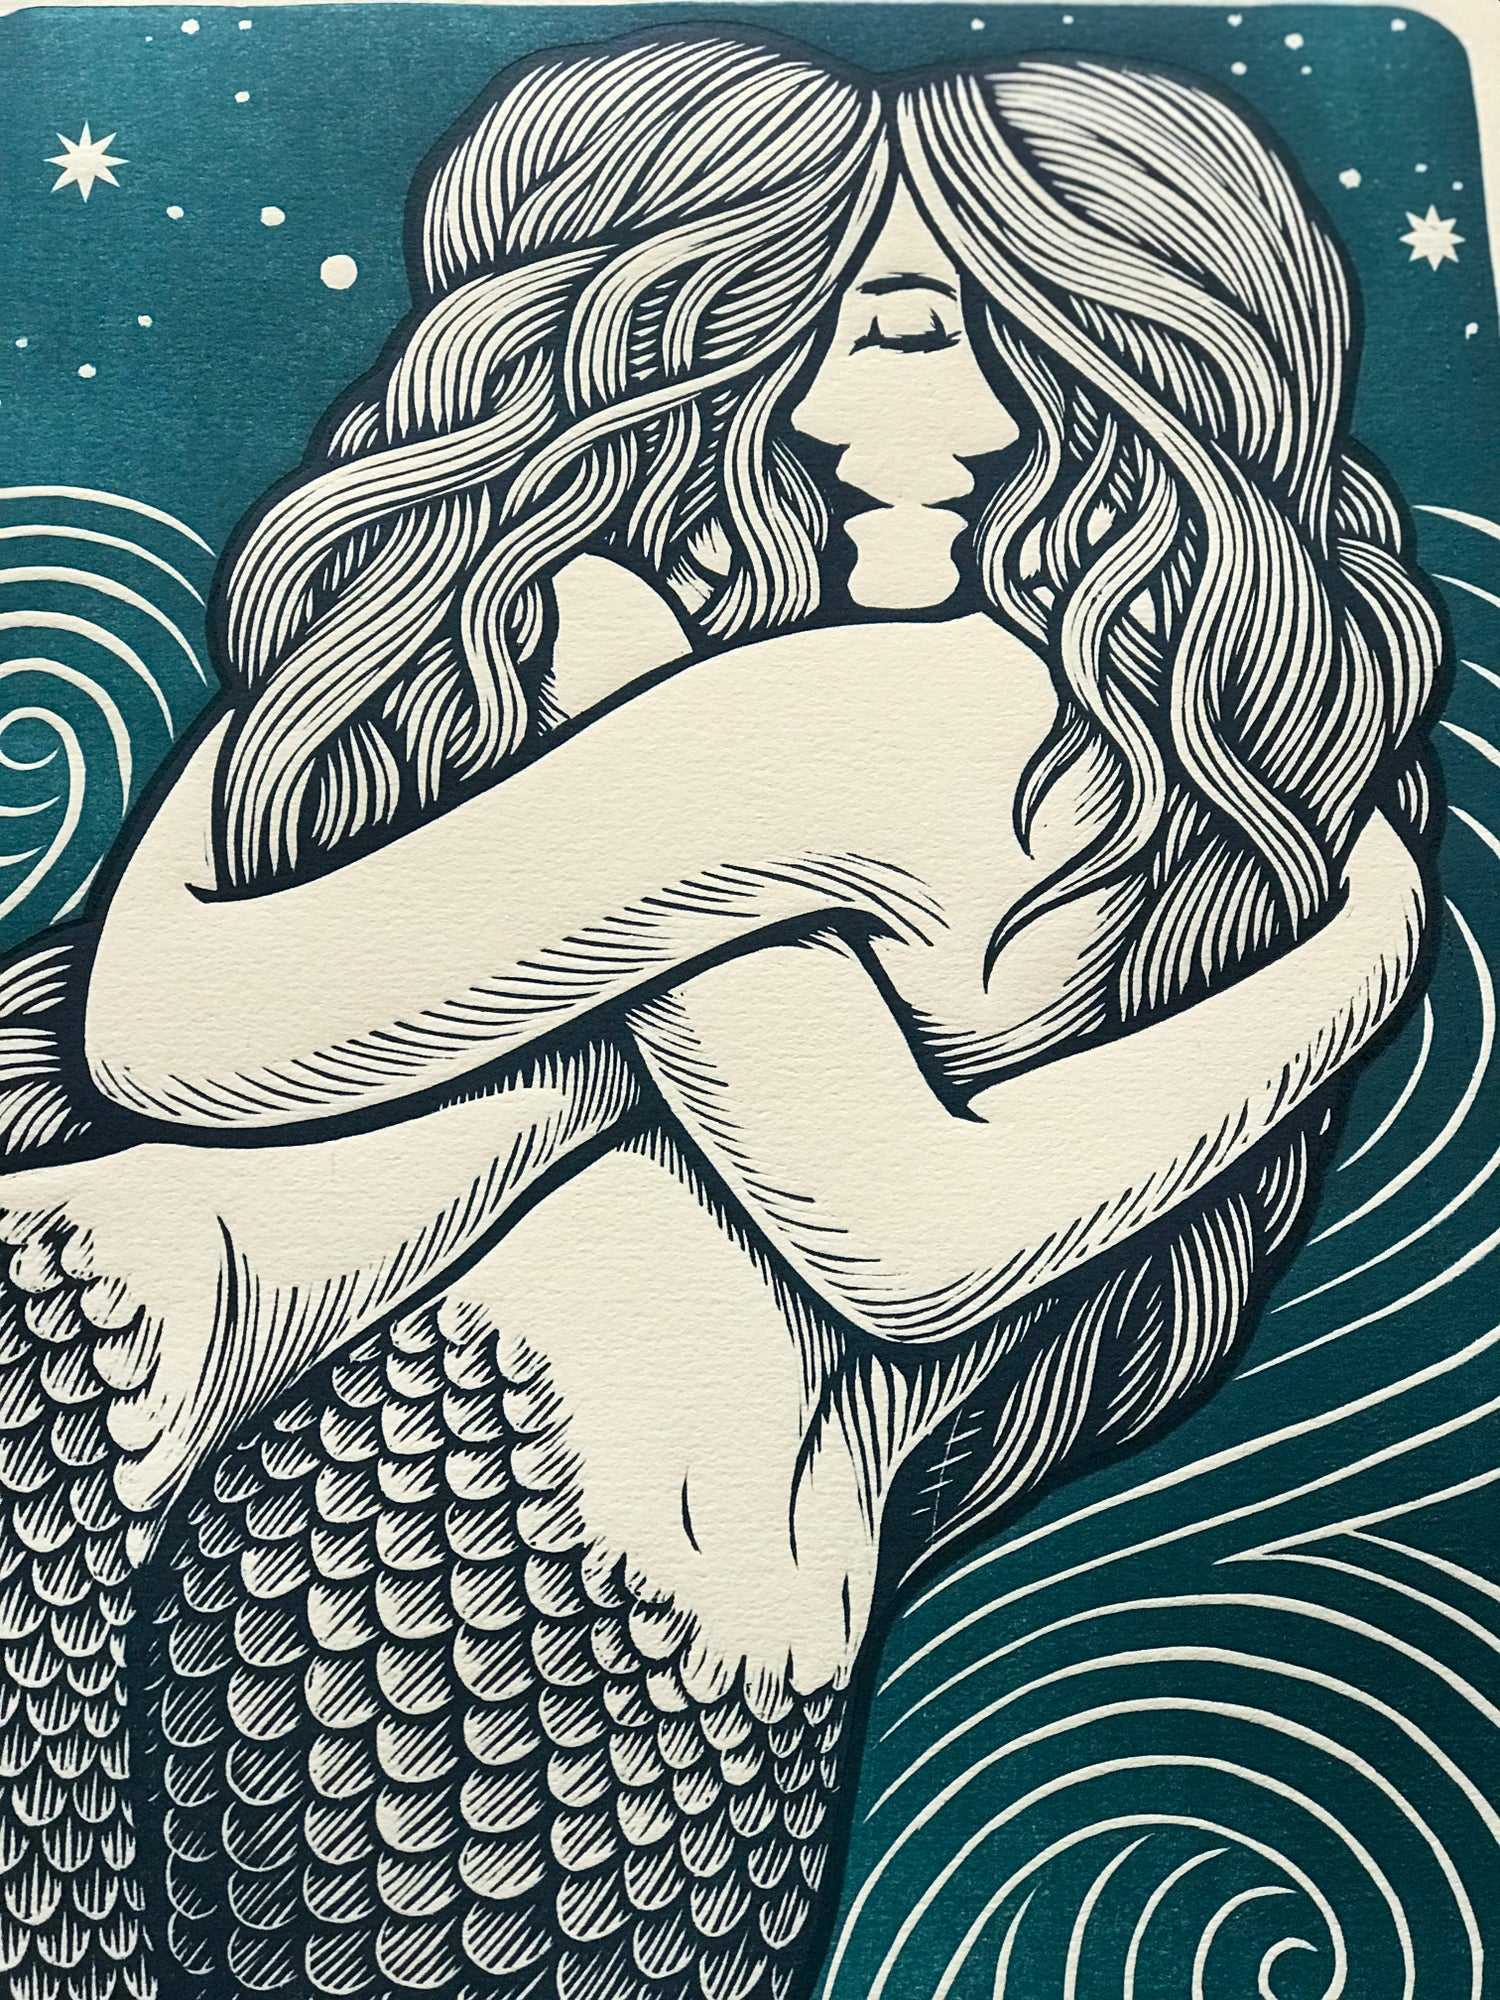 Image of Closeness - Blue Mermaids